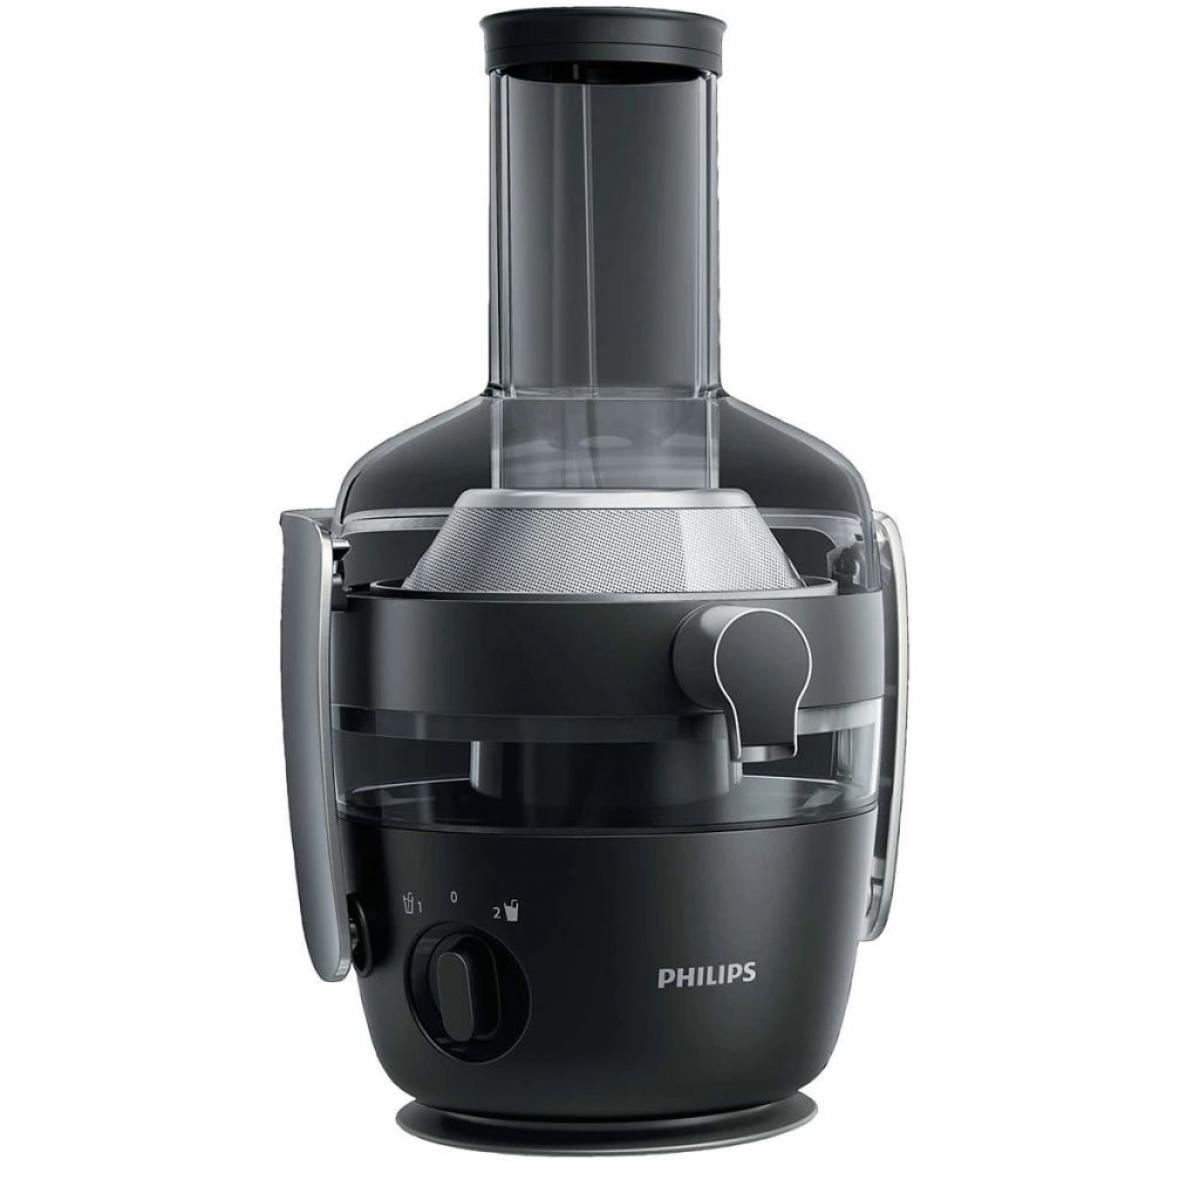 Philips Philips Centrifugeuse Avance Collection 1 L 1000 W HR1919/70